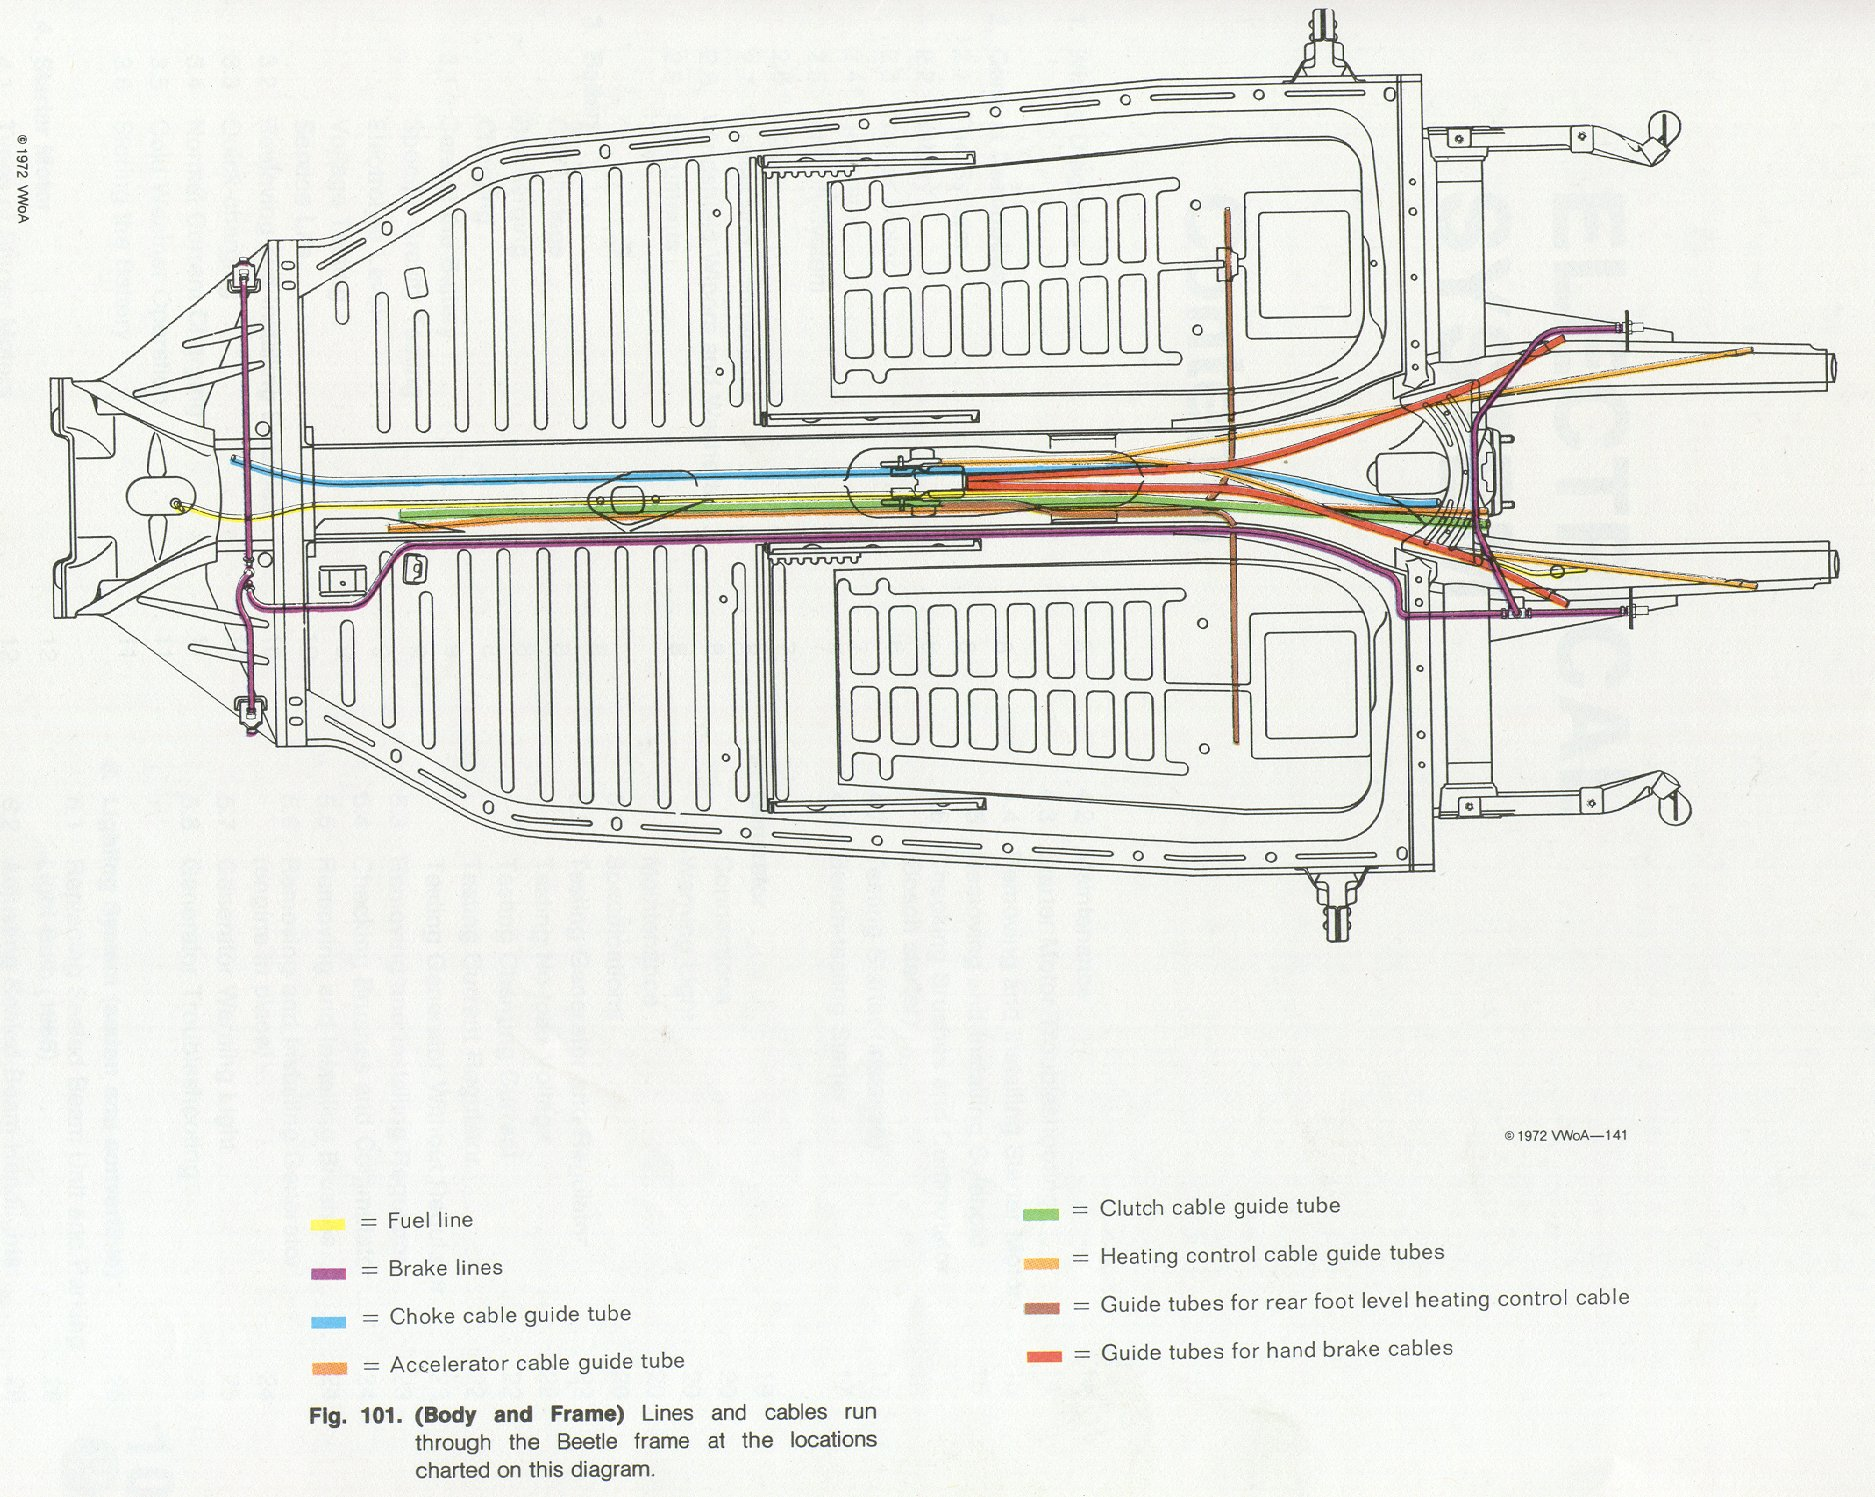 Beetle 1958 1967 View Topic Brake Line Install 1972 Vw Fuse Box Diagram Image May Have Been Reduced In Size Click To Fullscreen